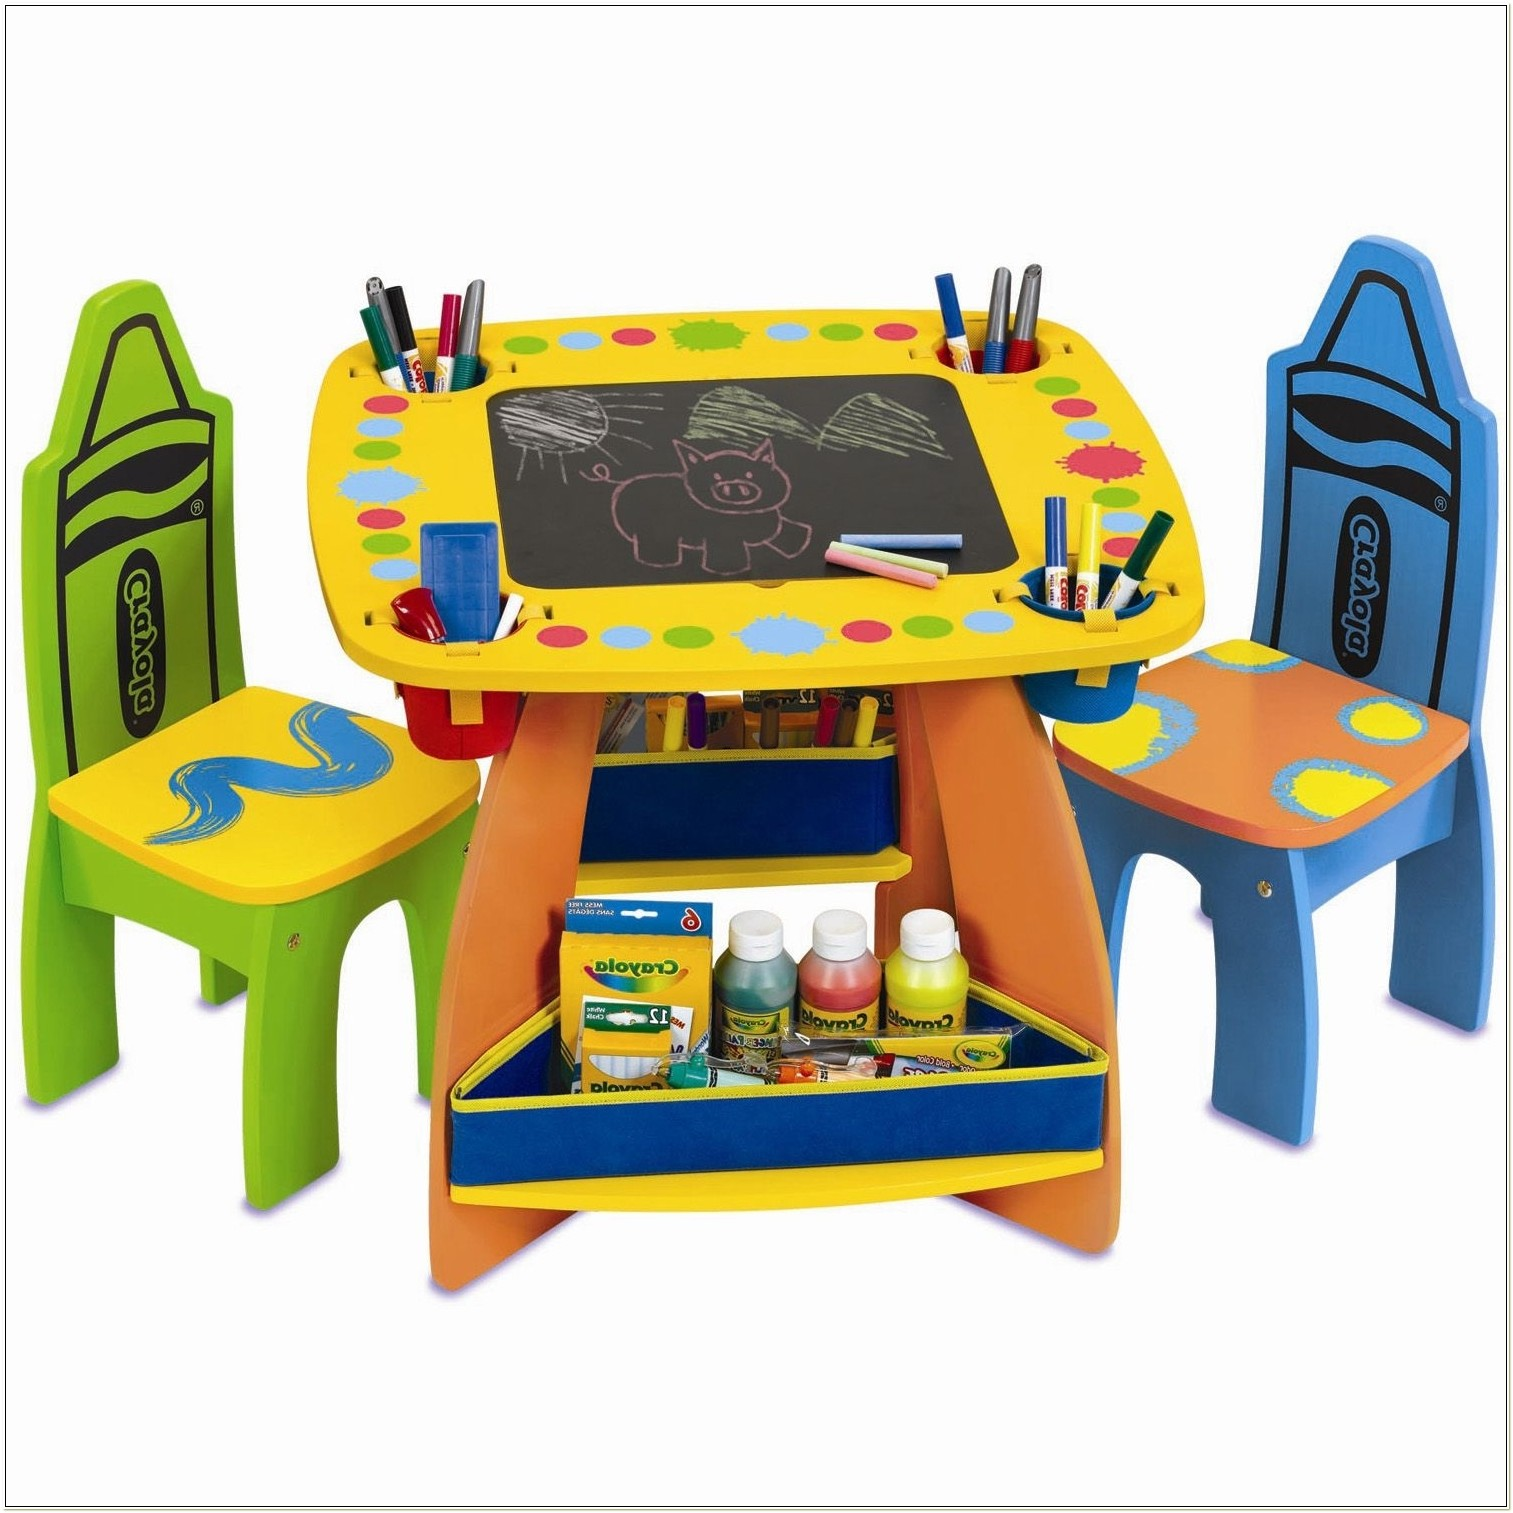 Grown Up Crayola Wooden Table Chair Set